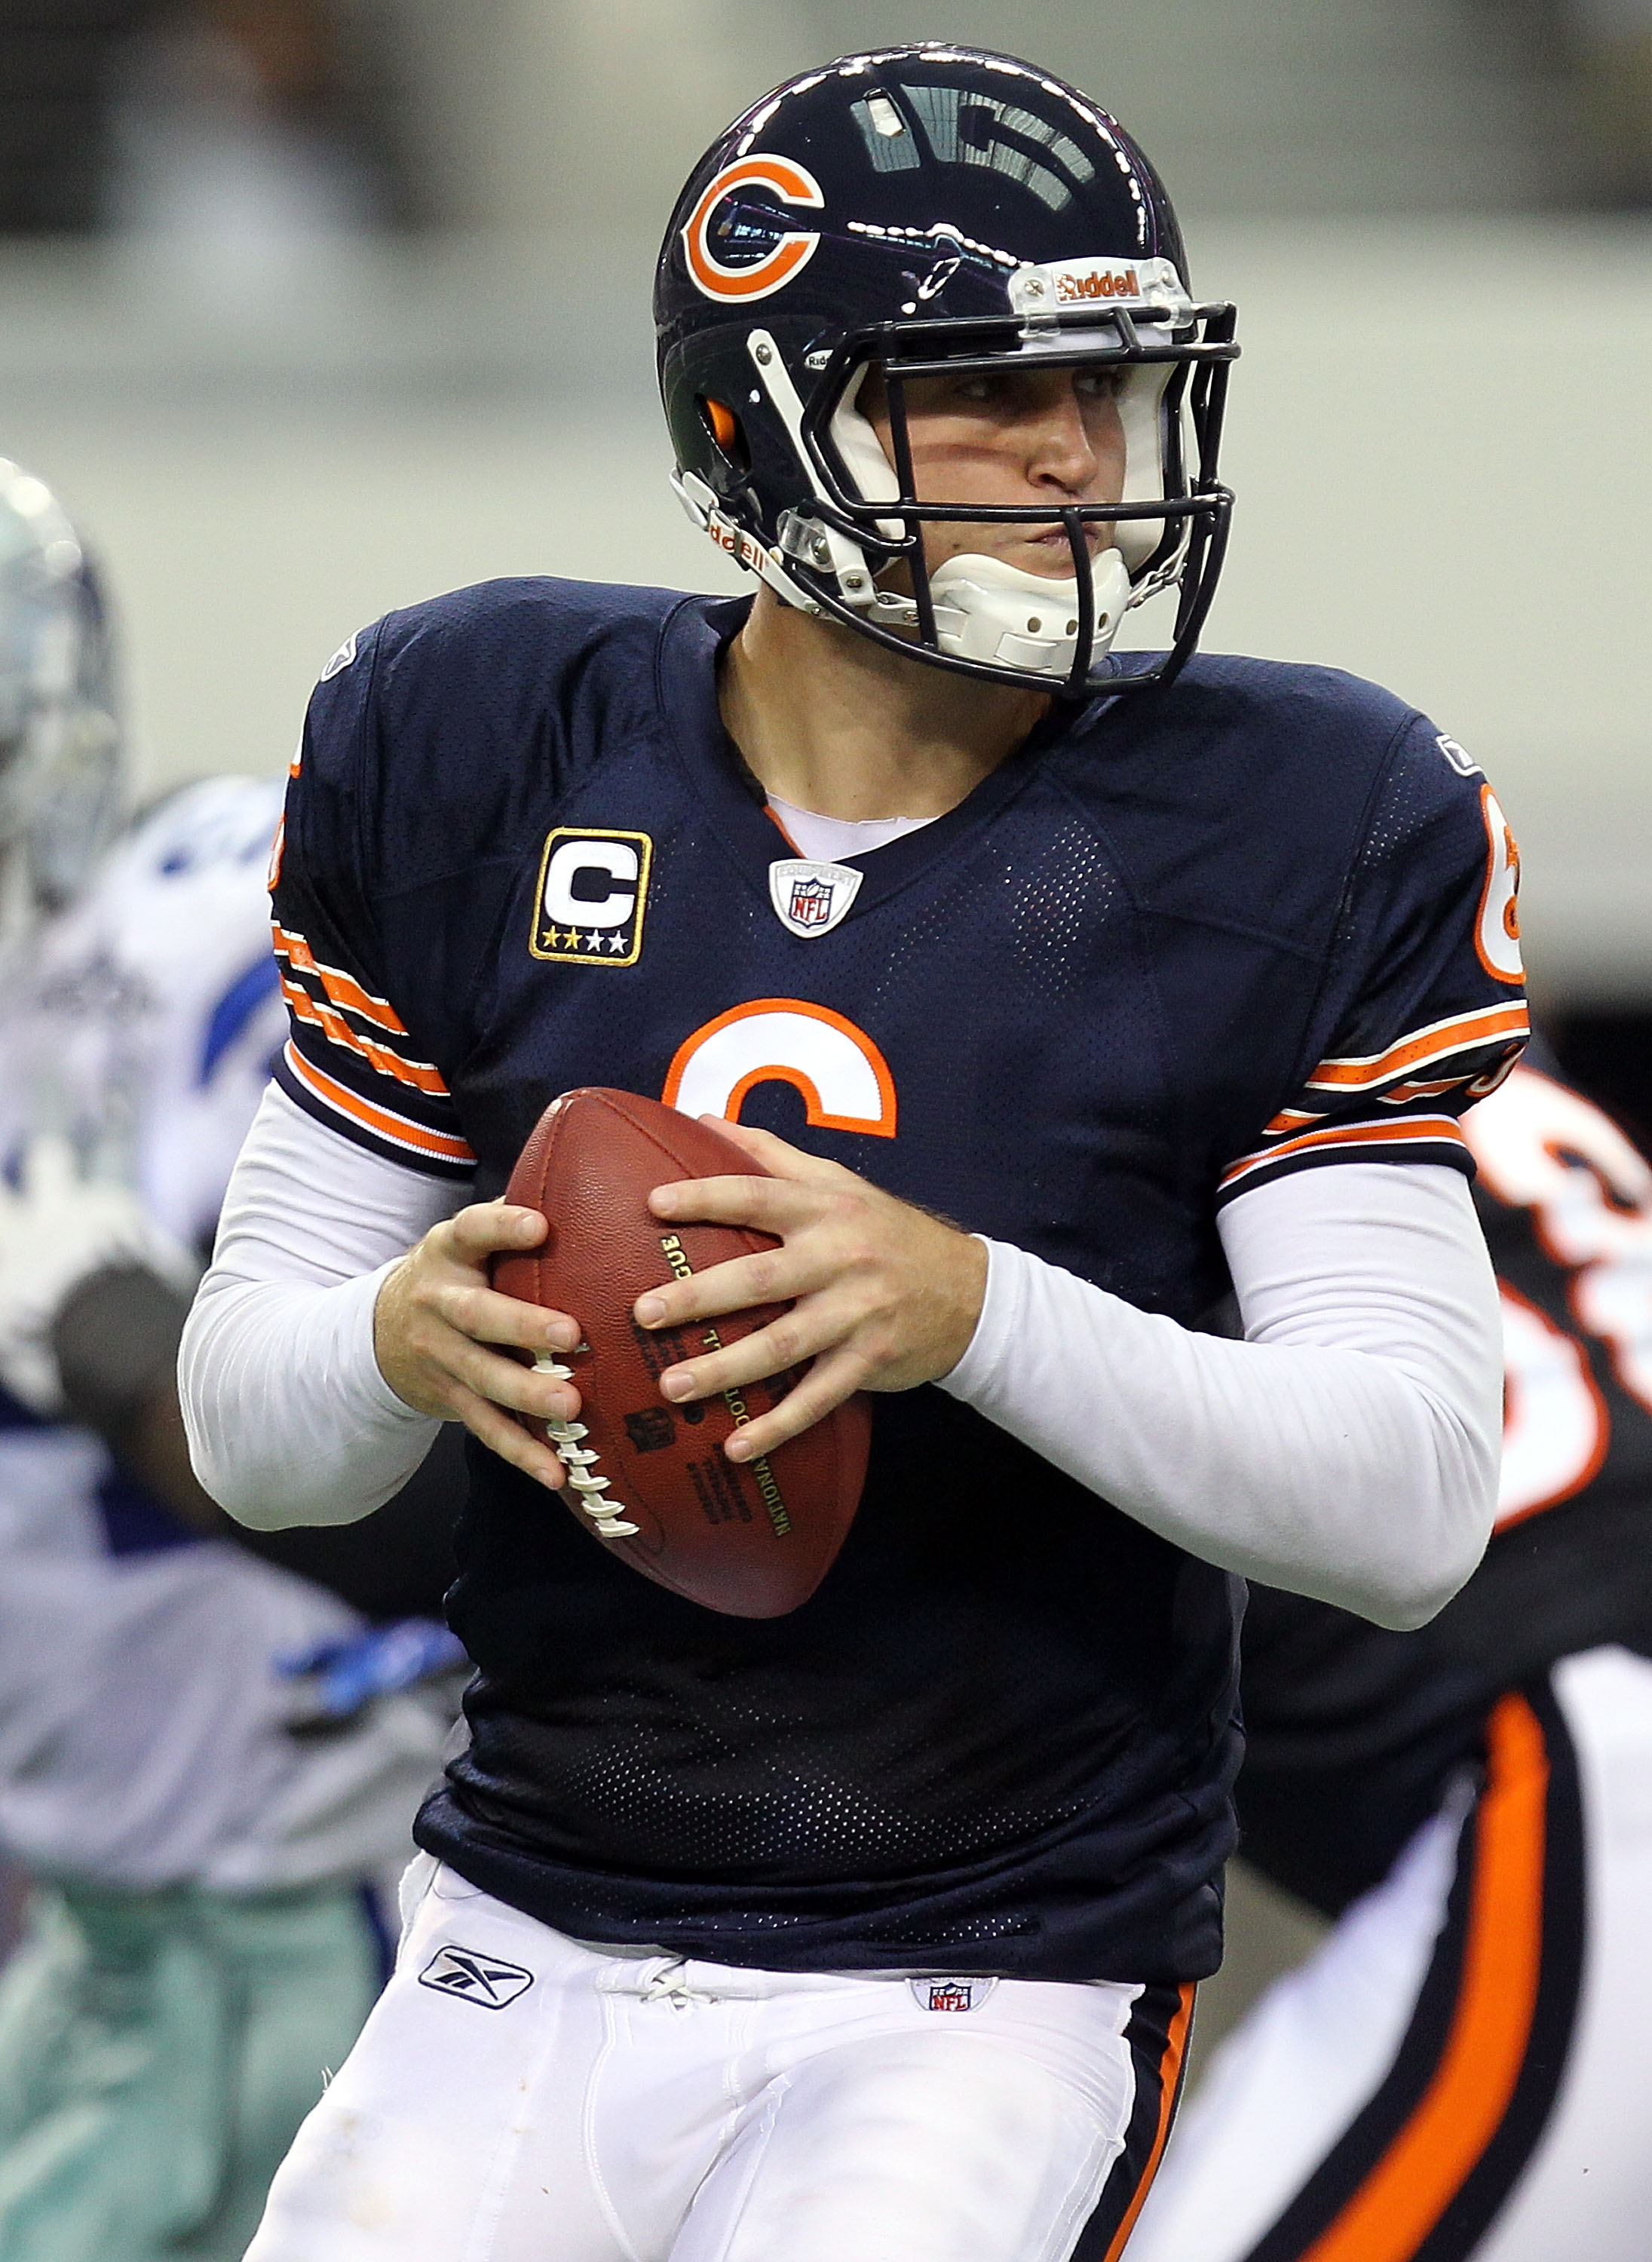 ARLINGTON, TX - SEPTEMBER 19:  Quarterback Jay Cutler #6 of the Chicago Bears looks to pass against the Dallas Cowboys at Cowboys Stadium on September 19, 2010 in Arlington, Texas.  (Photo by Ronald Martinez/Getty Images)